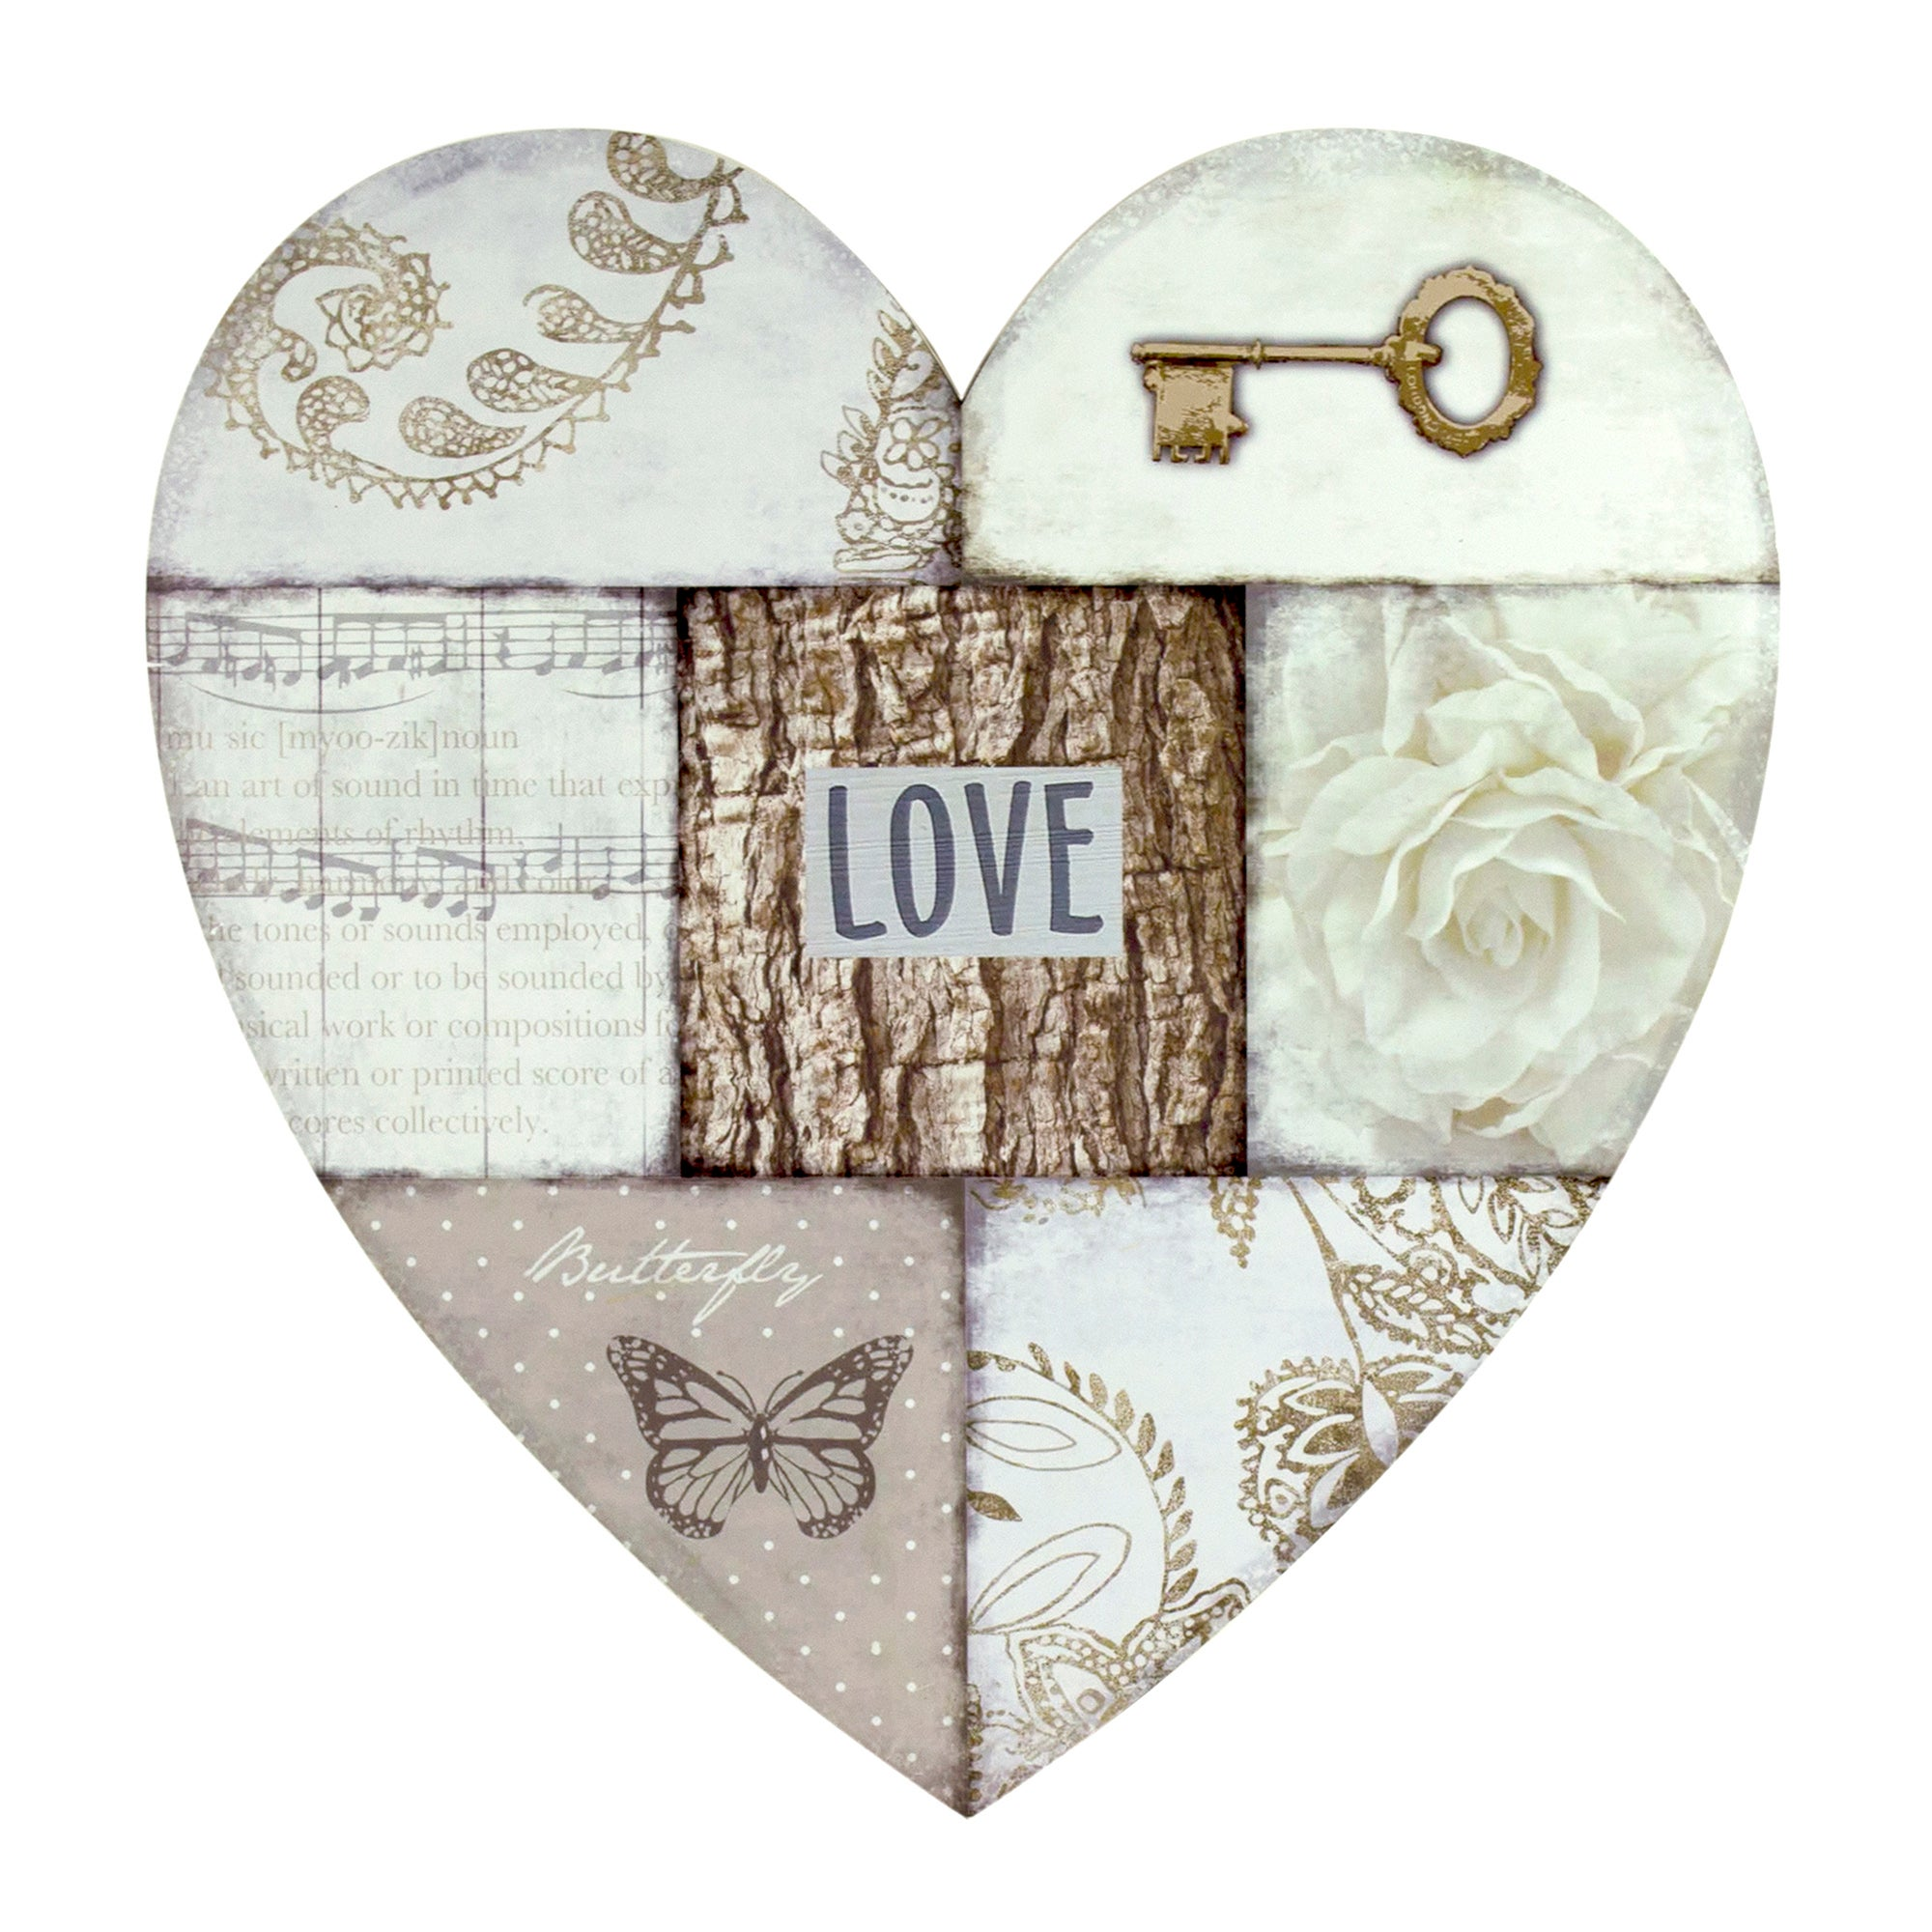 Love Heart Collage Wall Art